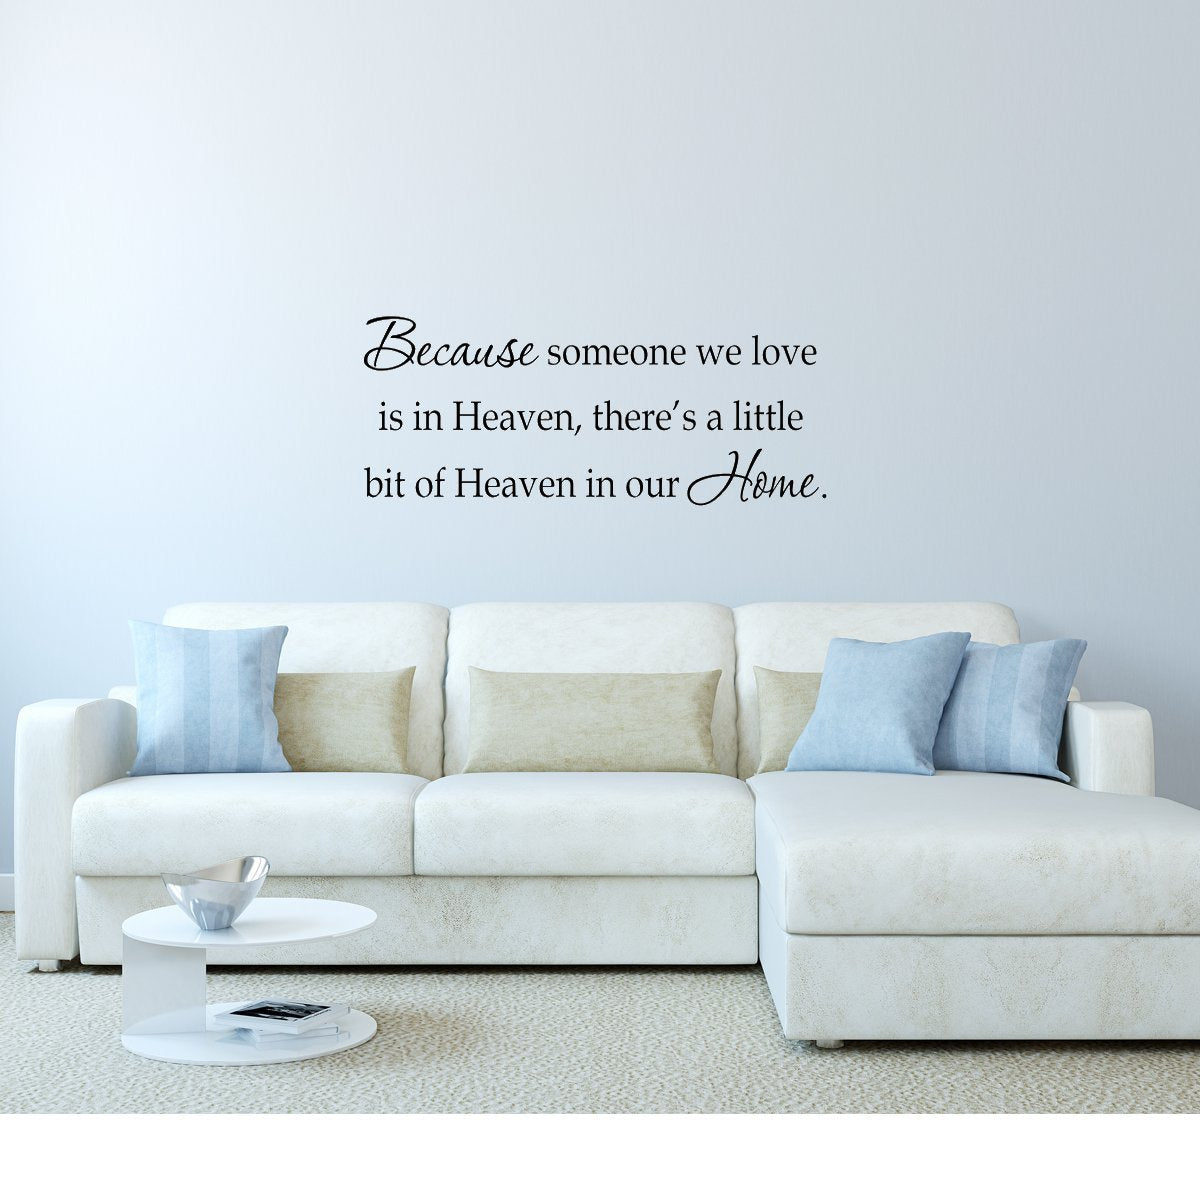 Vinyl Sticker Because someone we love is in heaven there/'s a little bit of heaven in Pw005BecauseiET Vinyl Wall Decal Wall Quotes